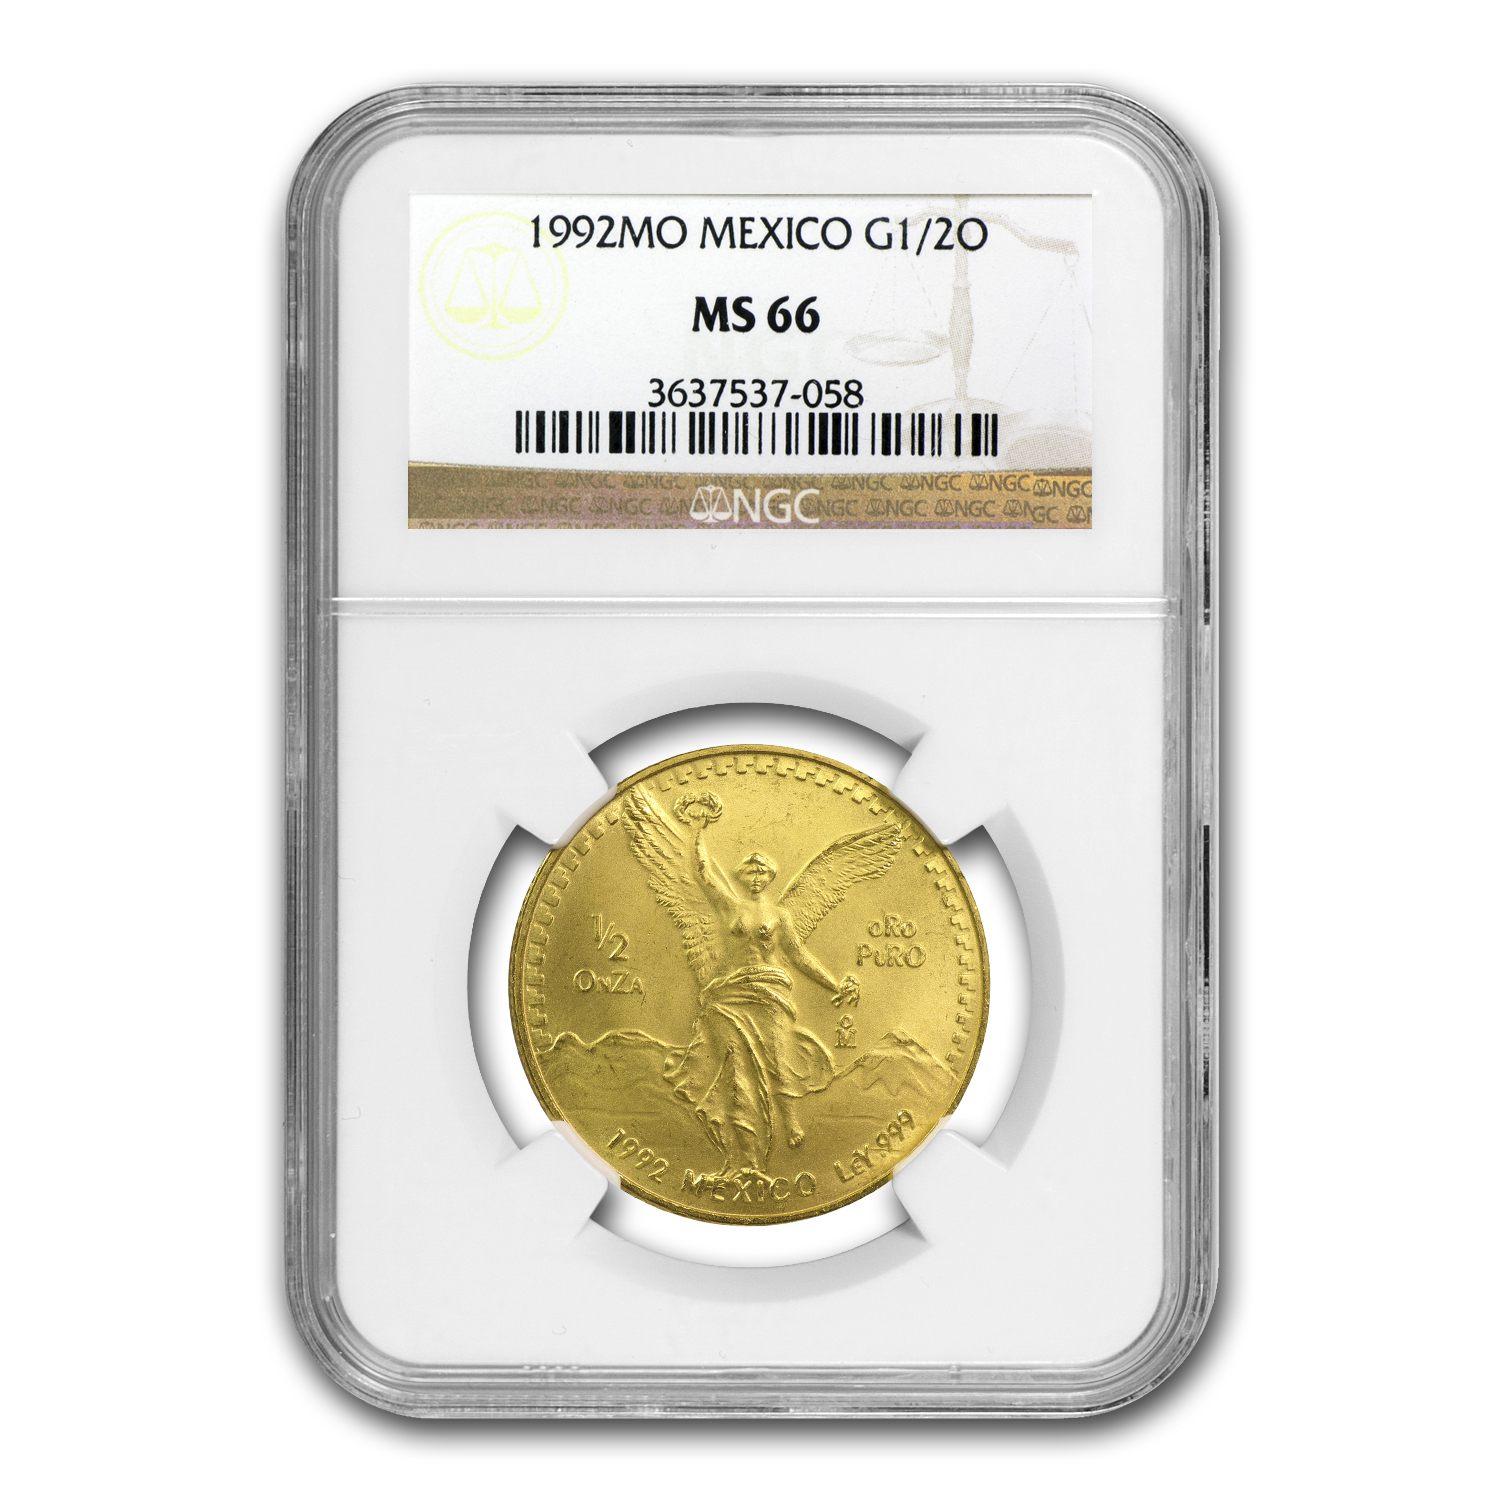 1992 Mexico 1/2 oz Gold Libertad MS-66 NGC